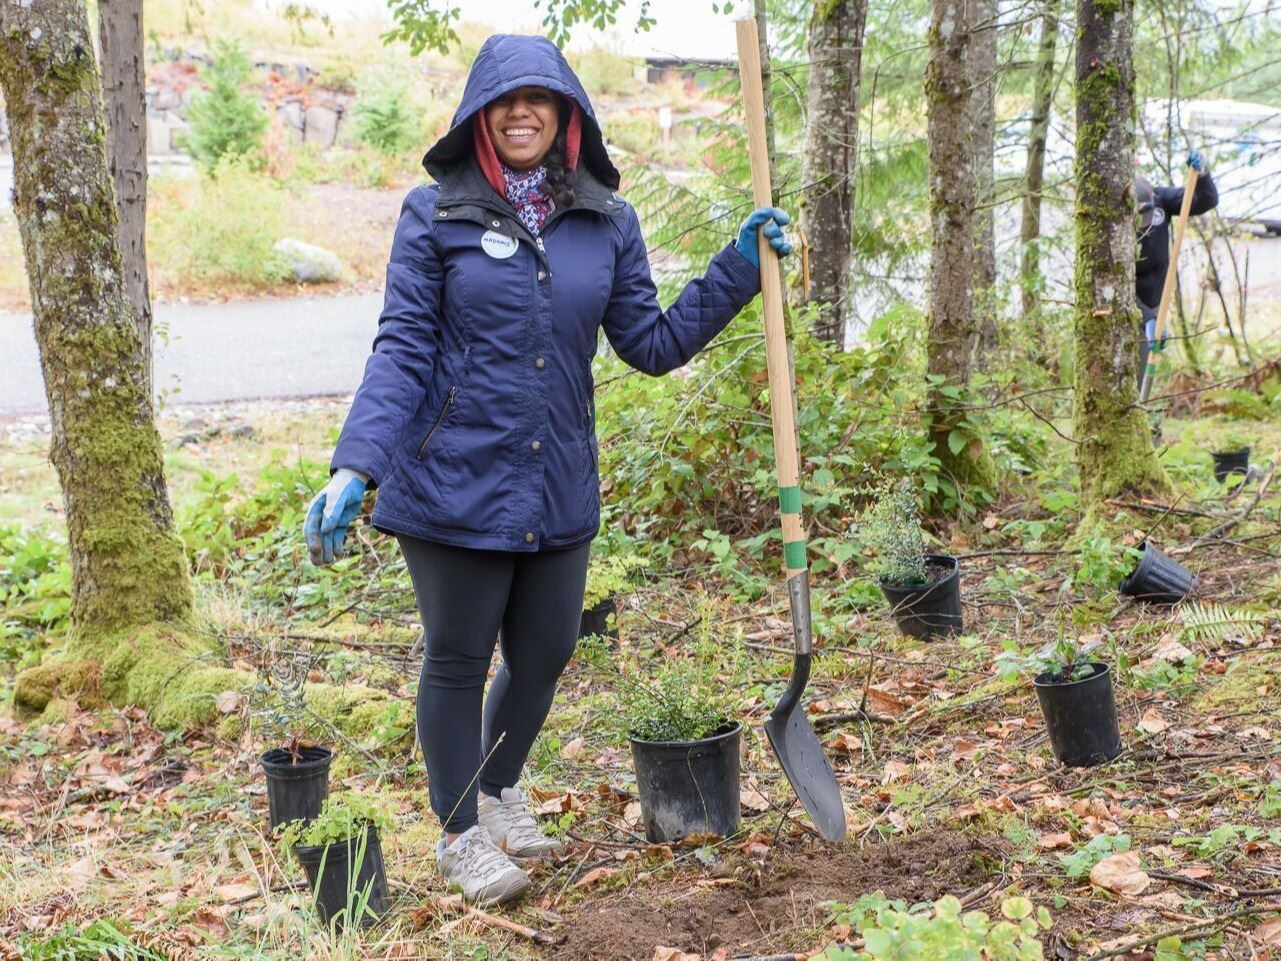 This is a photo of a woman in a purple coat planting a tree in a forest.